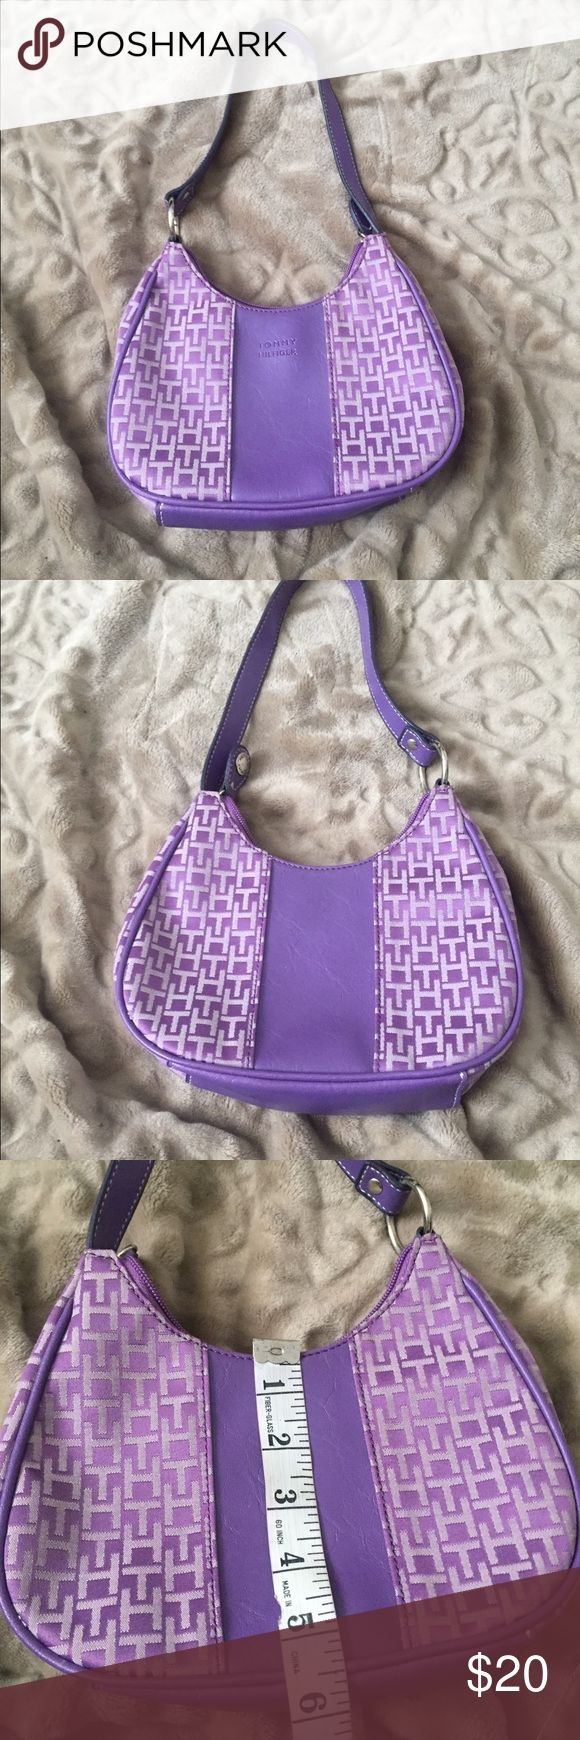 Super Cute Tommy Hilfiger Purple Purse. Like New, No Stains/Tears, perfect companion for the also hard-to-find purple Shoes. Very Cute!!! Tommy Hilfiger Bags Mini Bags